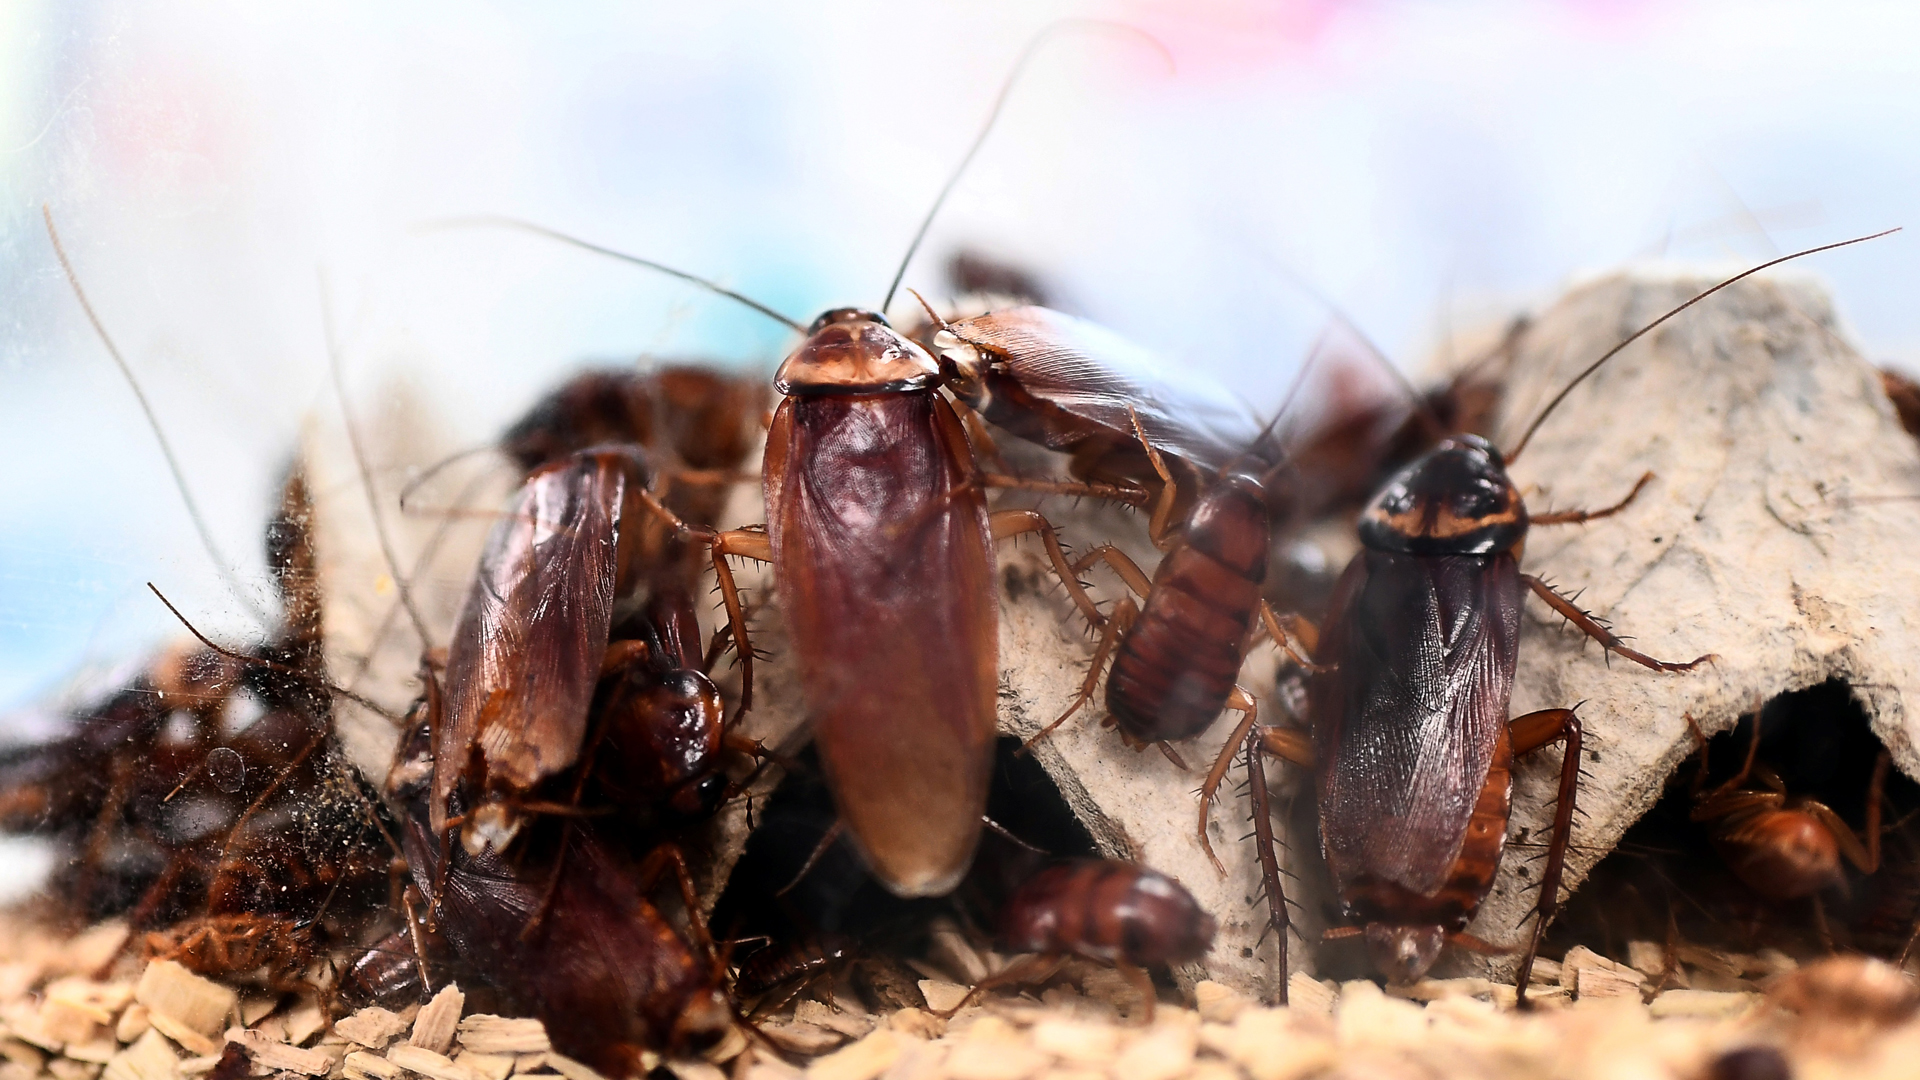 A picture taken on March 29, 2018 shows cockroaches locked in a container at the laboratory of the center of research on infectious diseases of the University Hospital Institute (IHU) Mediterranean Infection, in Marseille. France. (Credit: ANNE-CHRISTINE POUJOULAT/AFP/Getty Images)